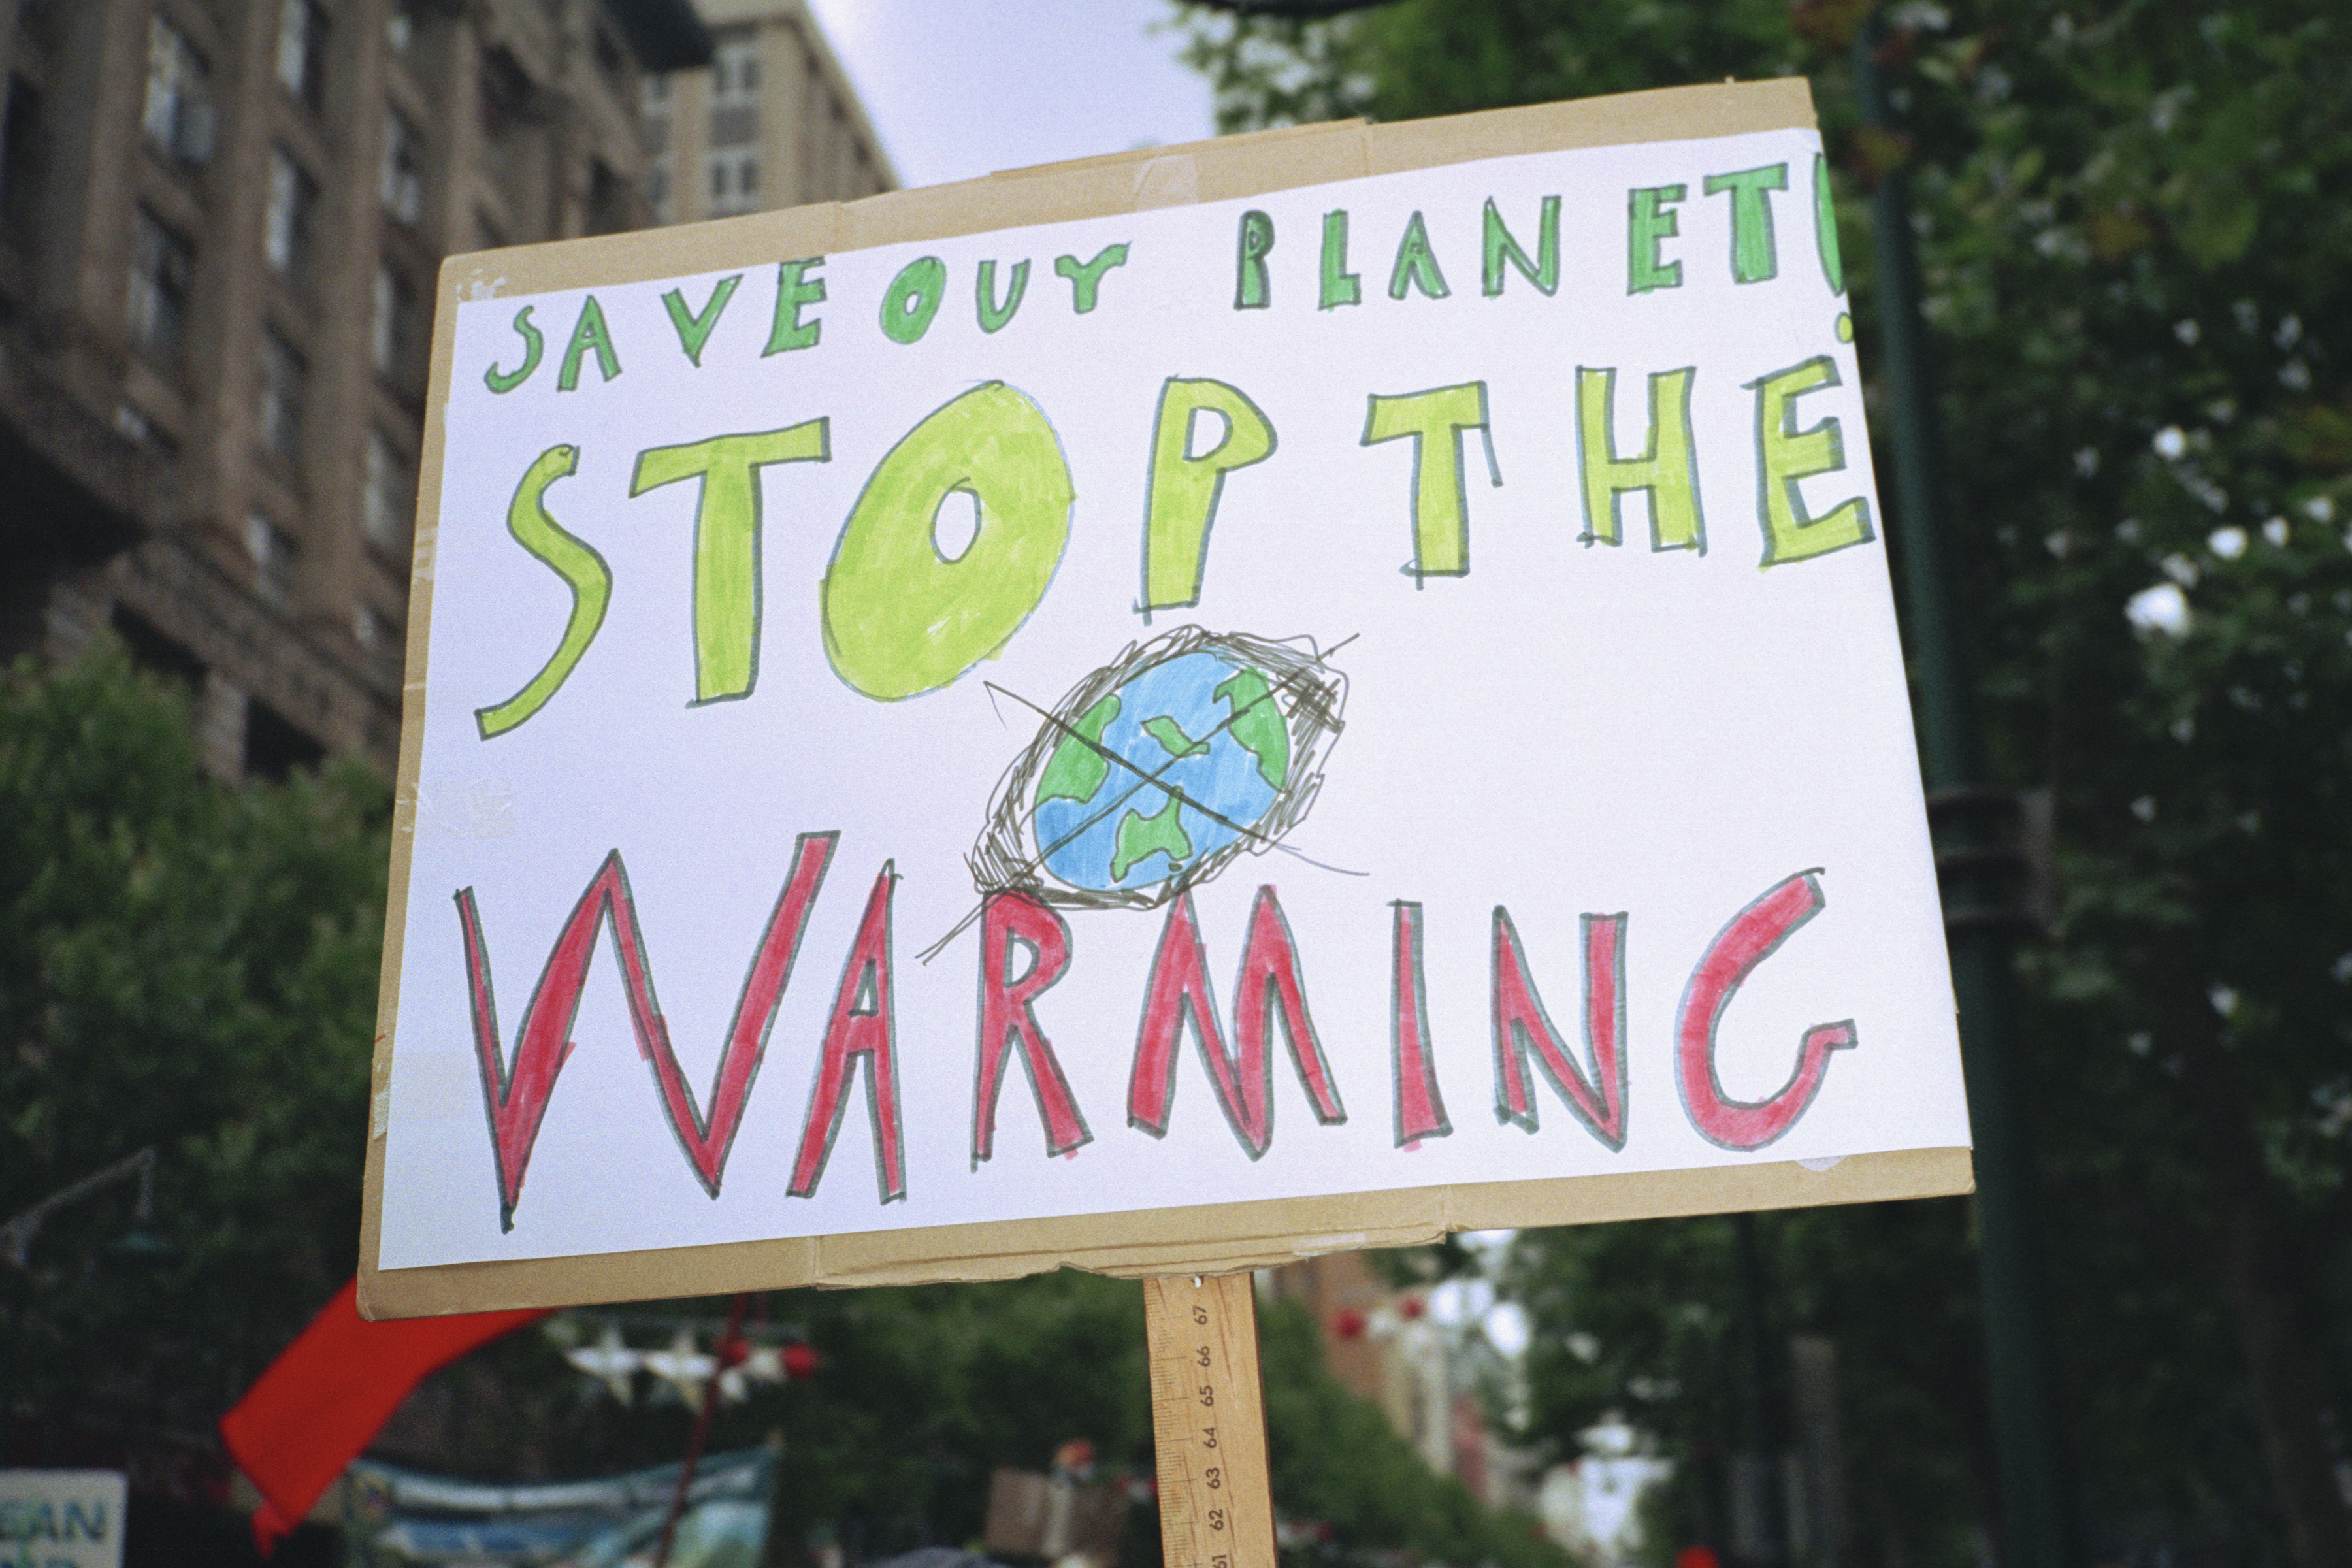 A global warming placard on display in a city. (Getty Images)